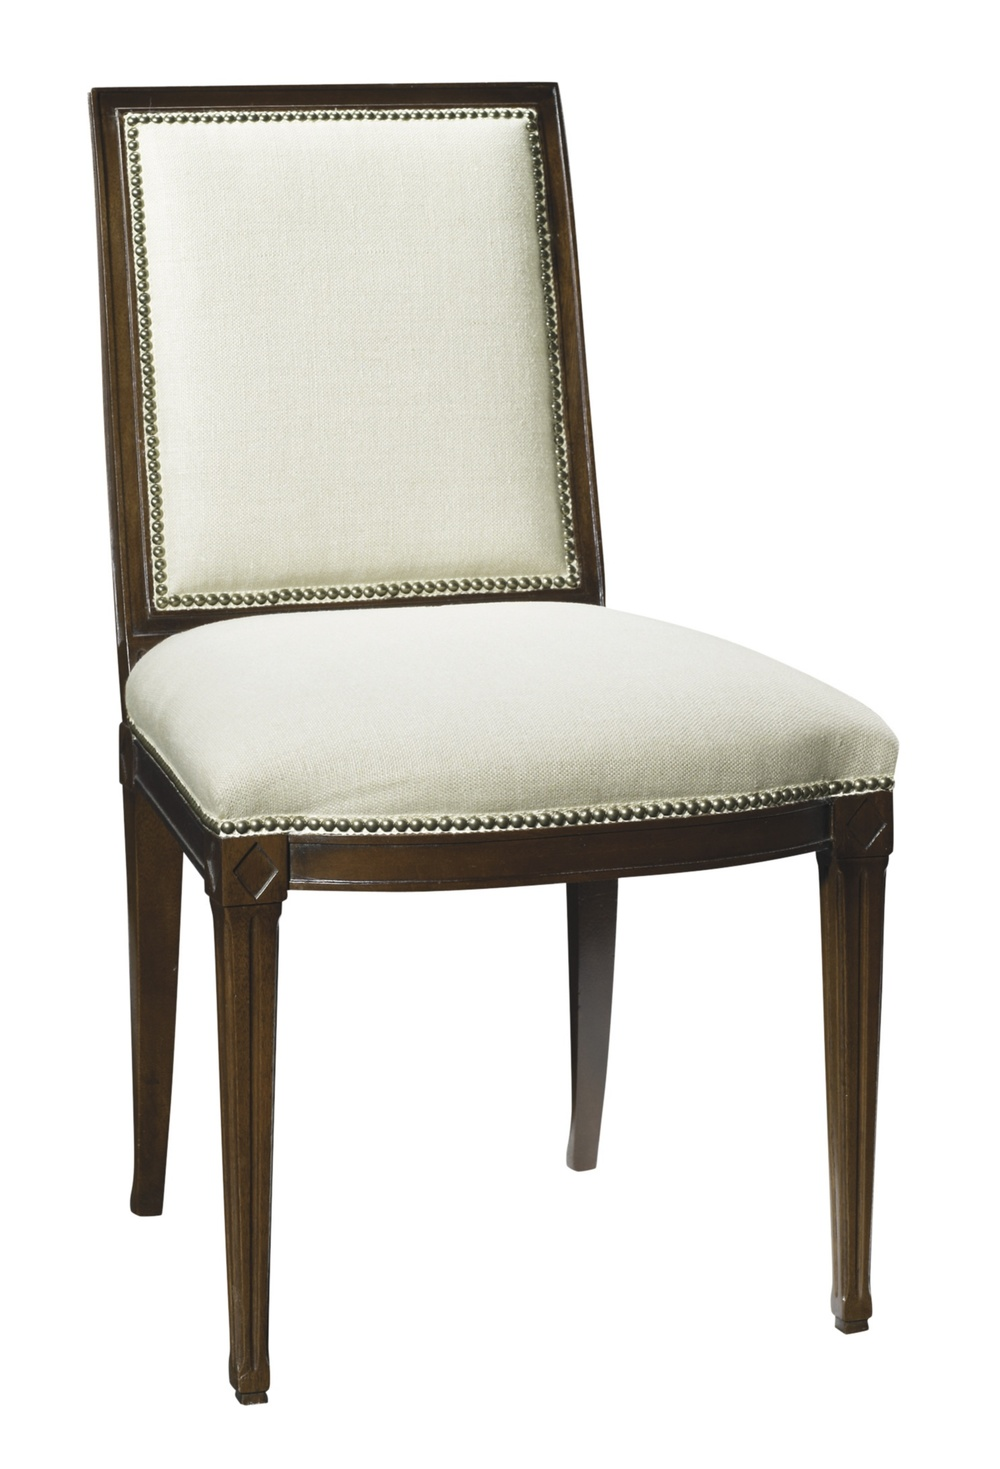 Hickory Chair - Amsterdam Side Chair